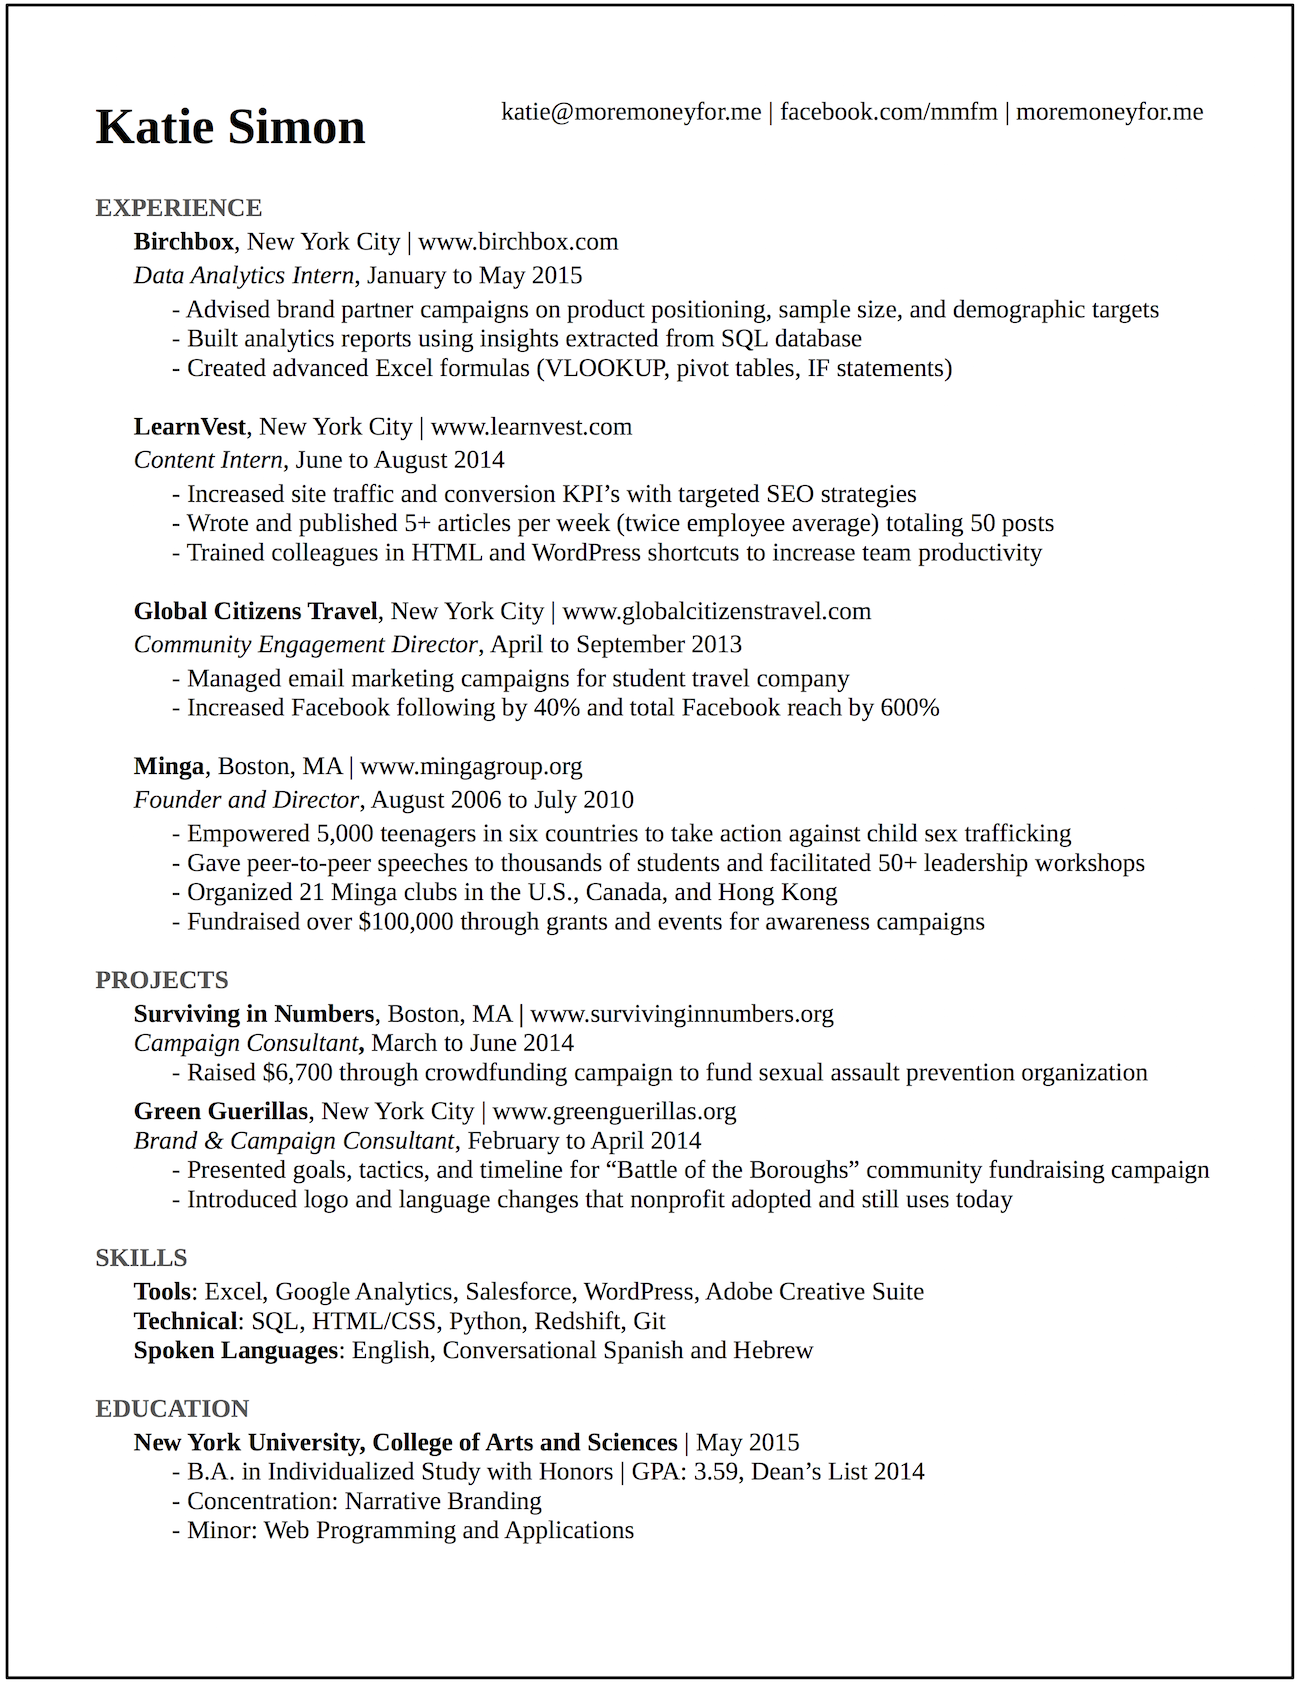 This résumé landed me interviews at Google, BuzzFeed, and more than ...